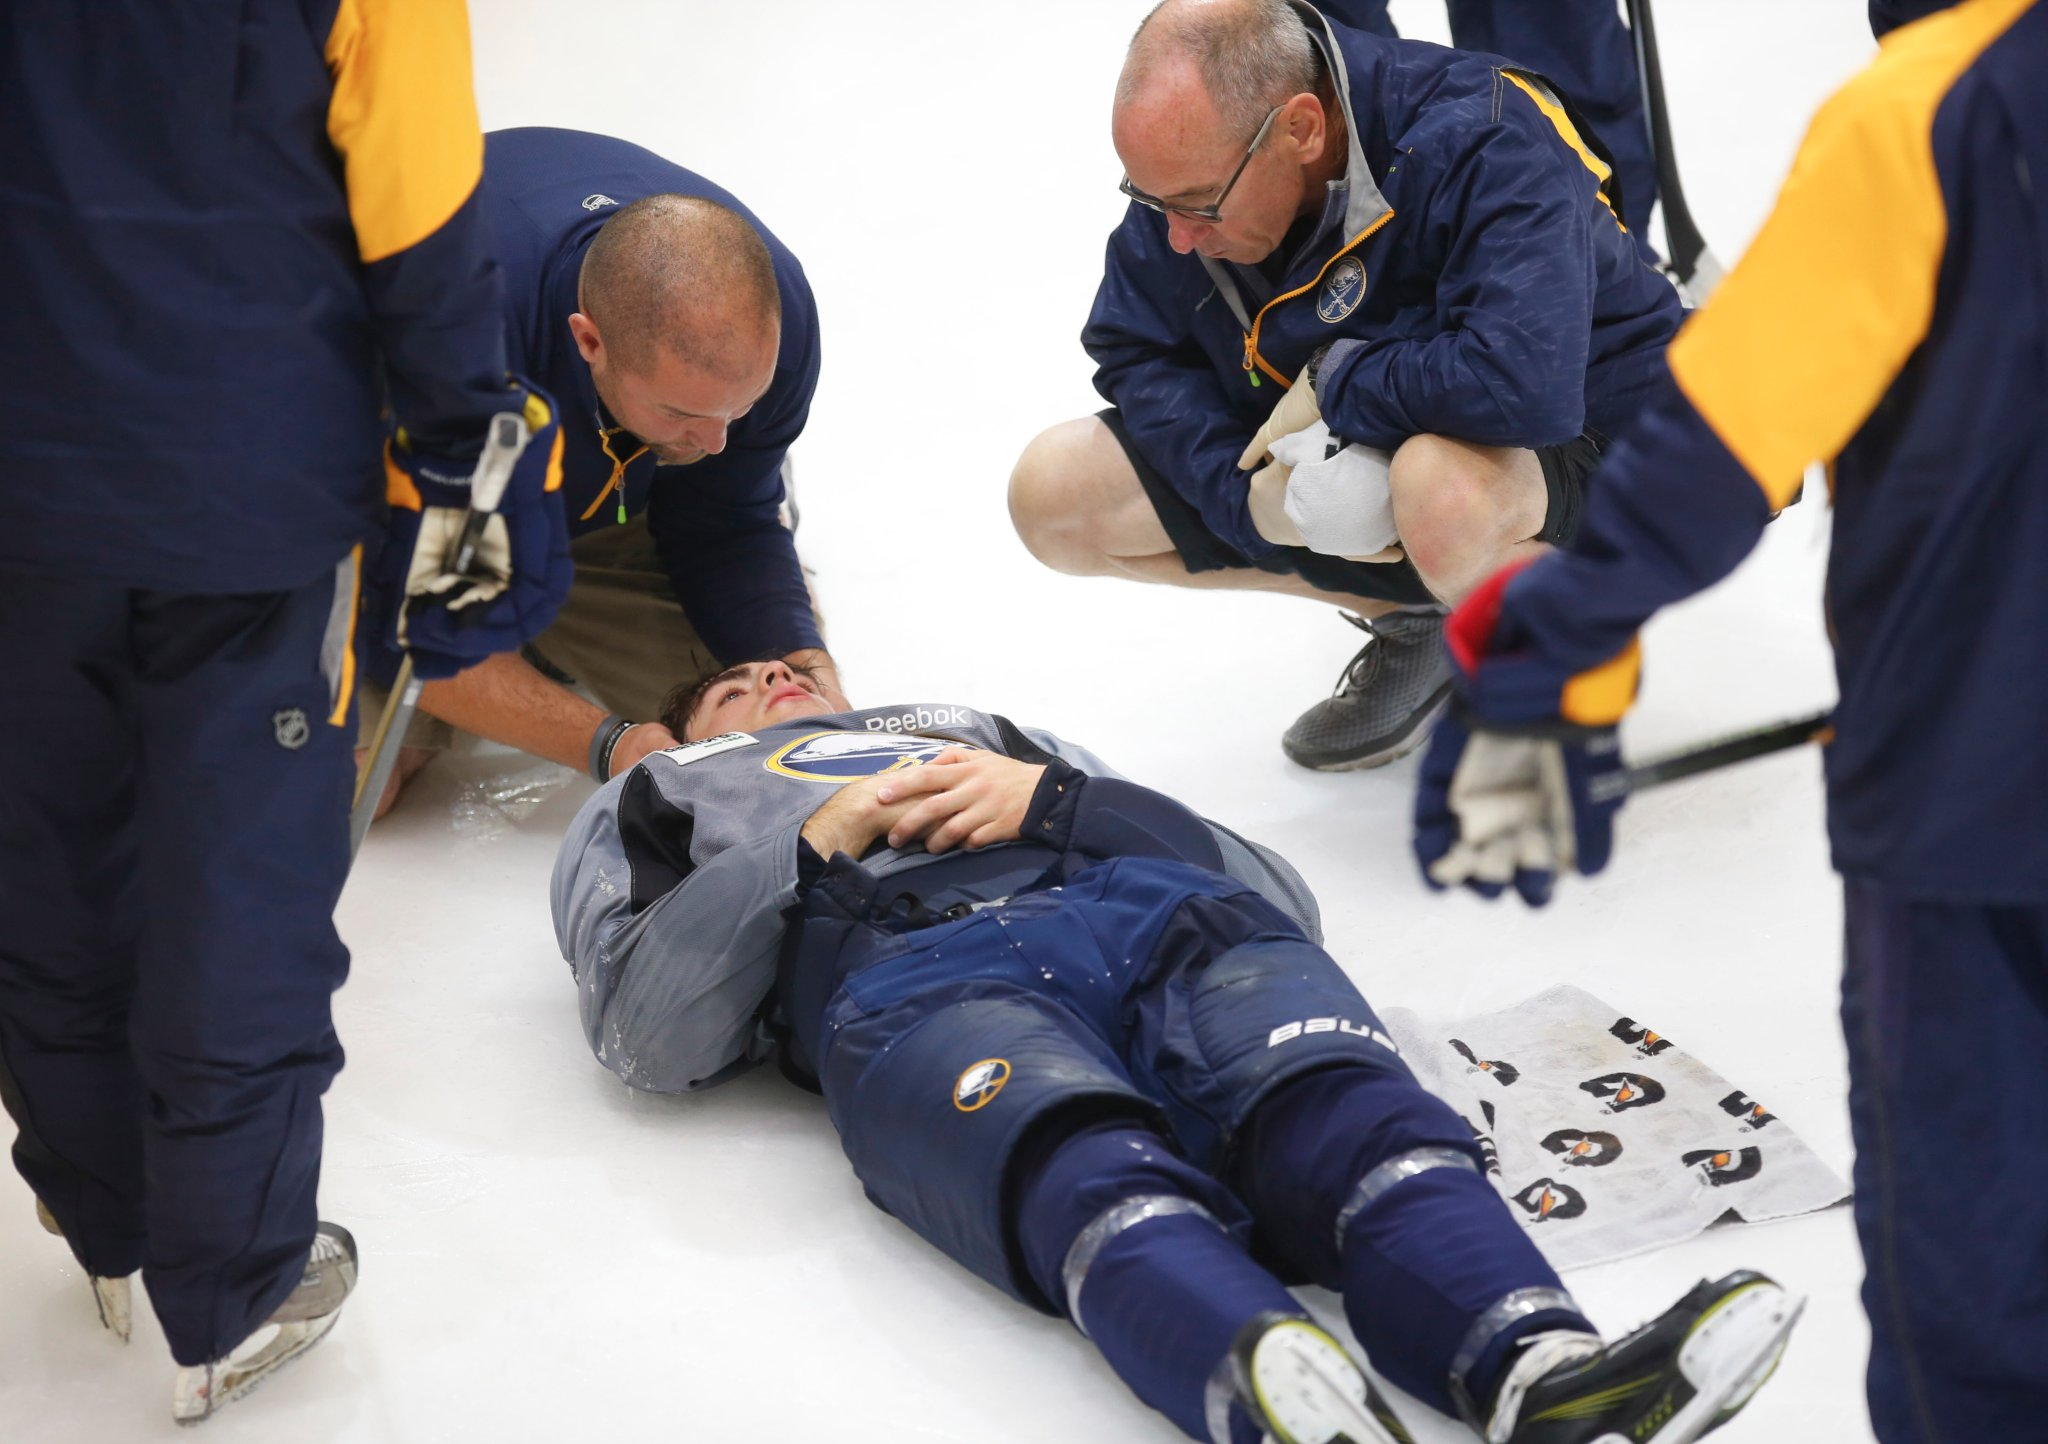 Michael Campoli lays on the ice after being injured during the Sabres development camp 3-on-3 tournament. (Harry Scull Jr./Buffalo News)